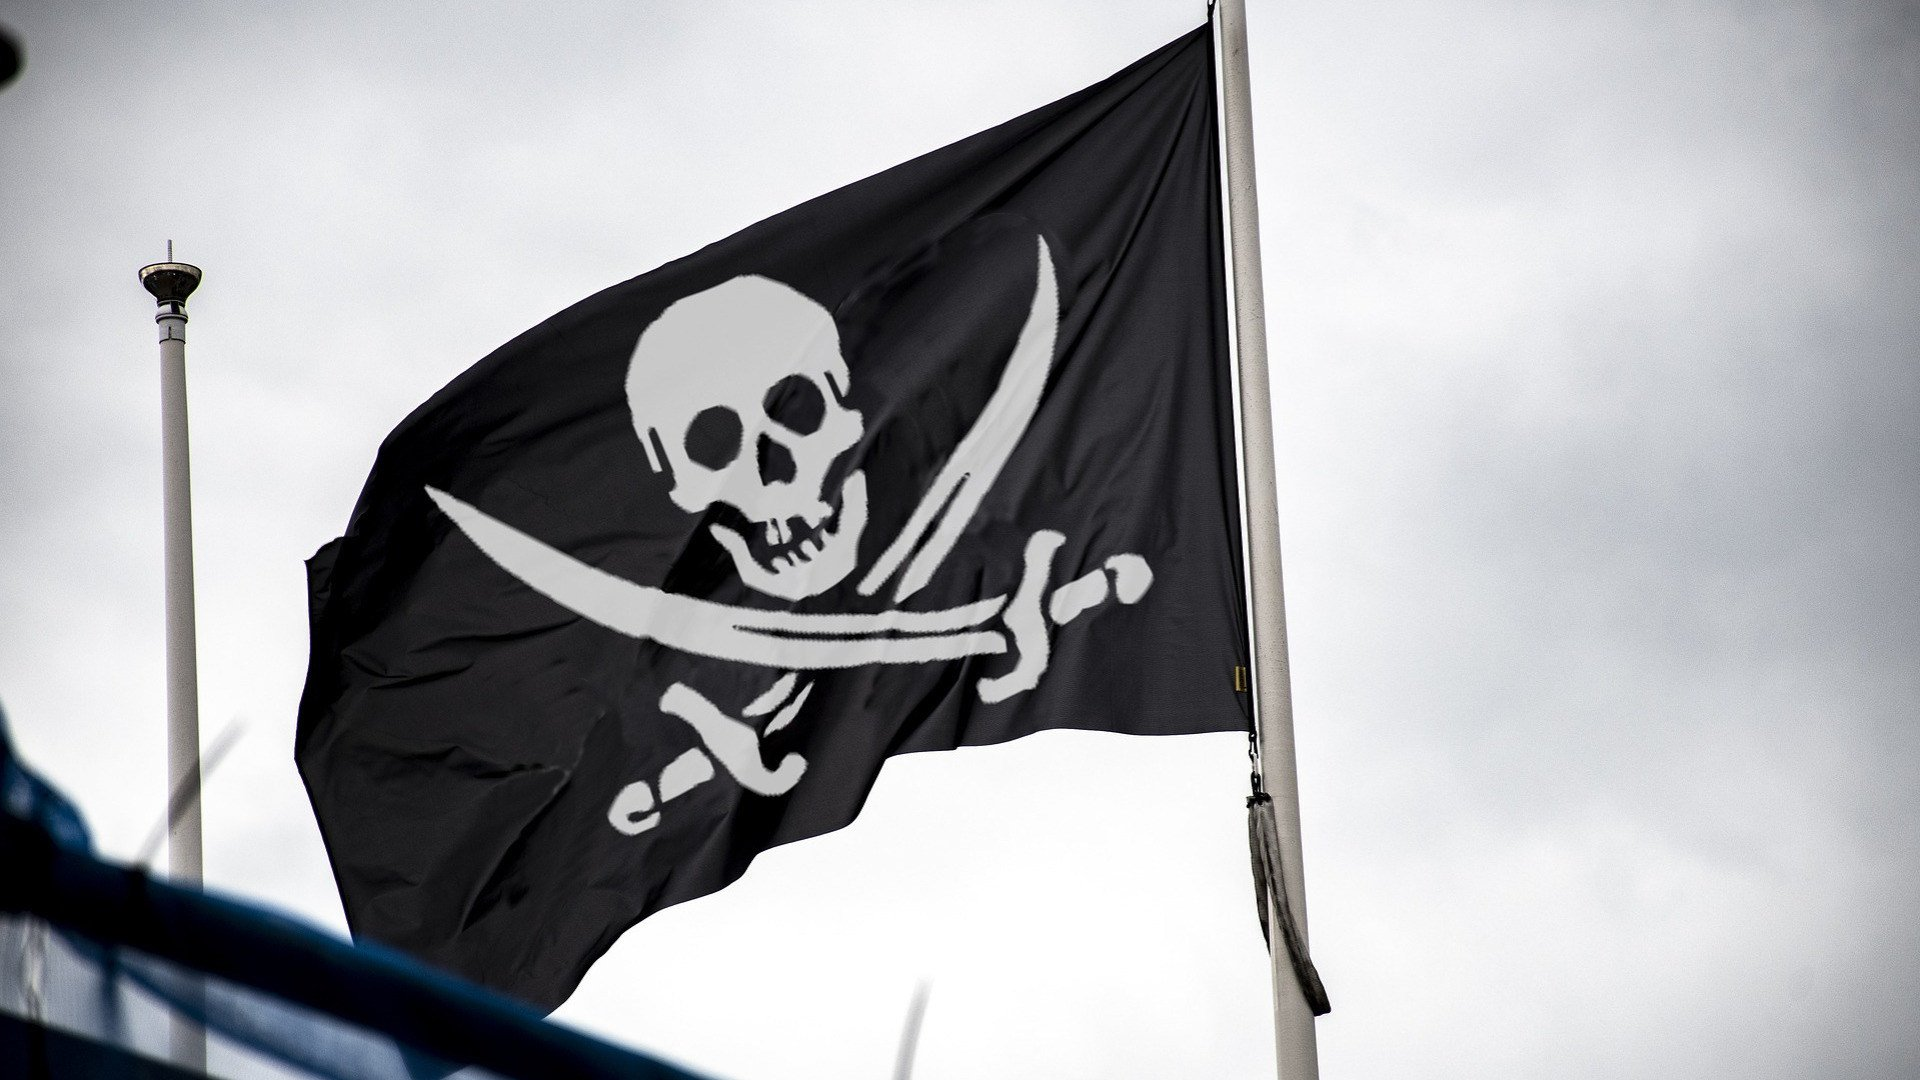 Filesharing, Piraterie, Illegal, Piracy, Totenkopf